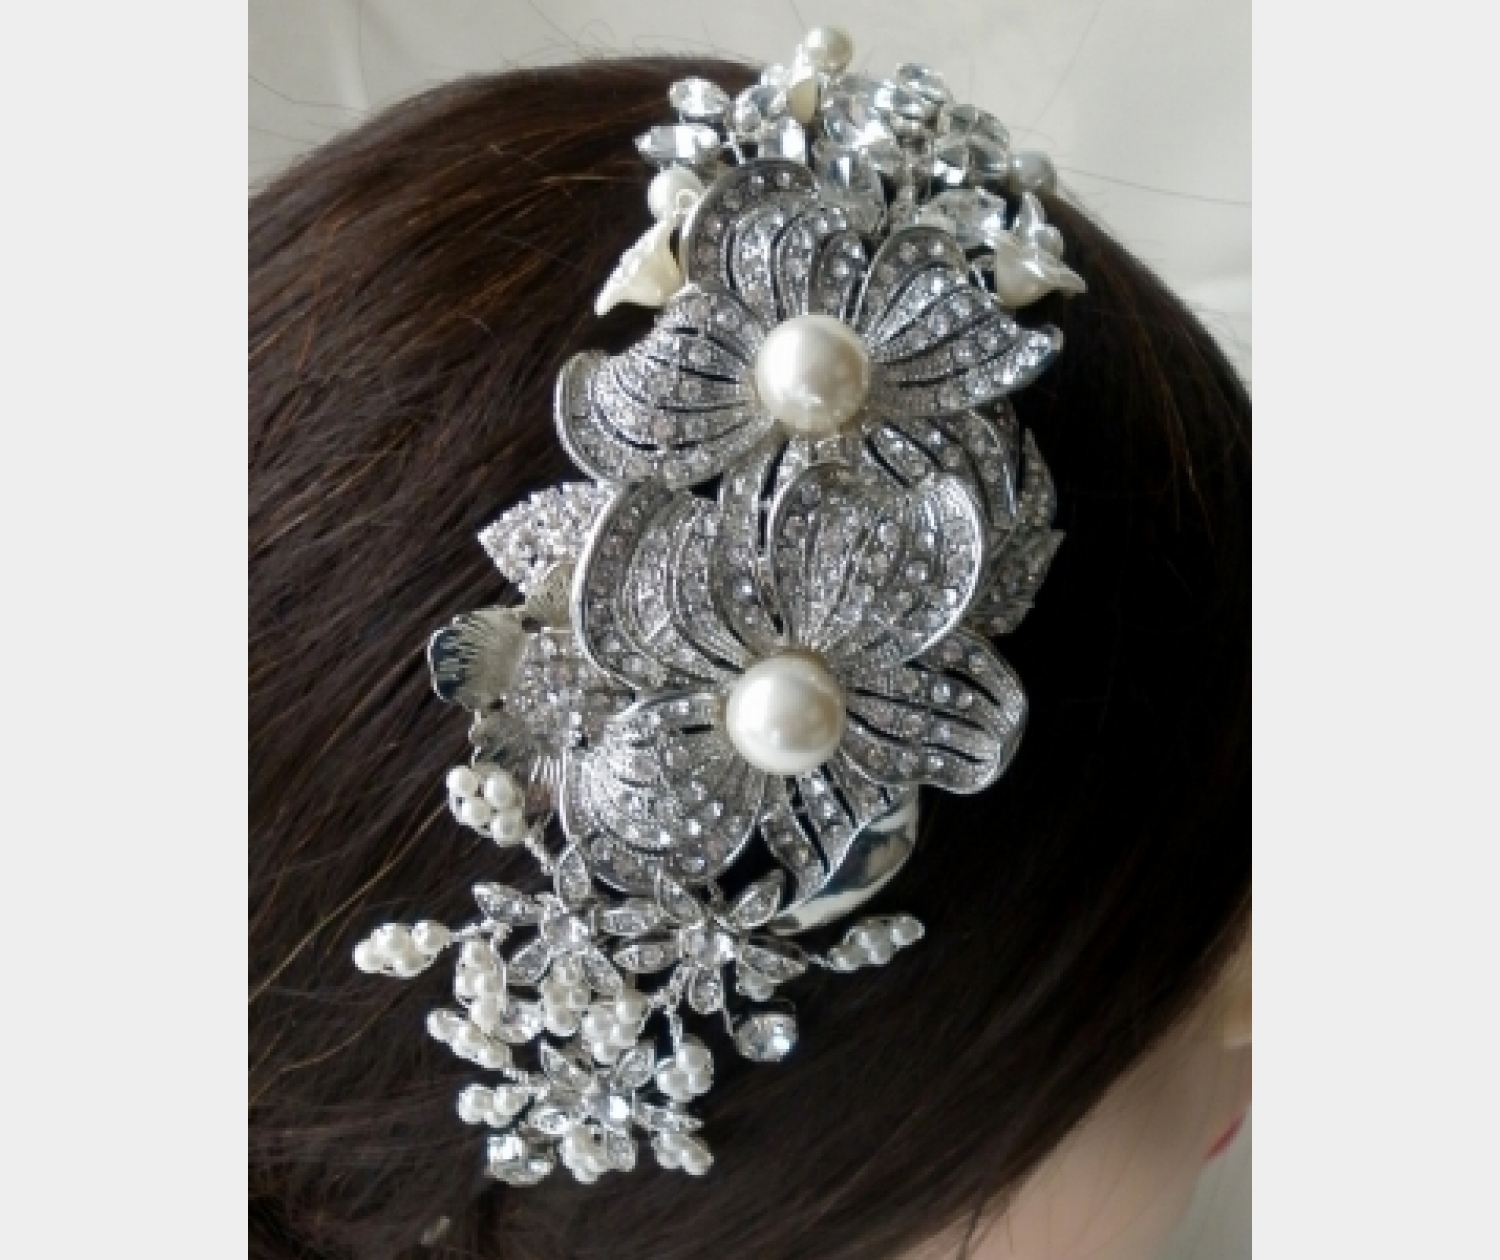 Vicky H Tiara Designs - Handmade and Bespoke Tiaras, head pieces, accessories and brooch bouquets